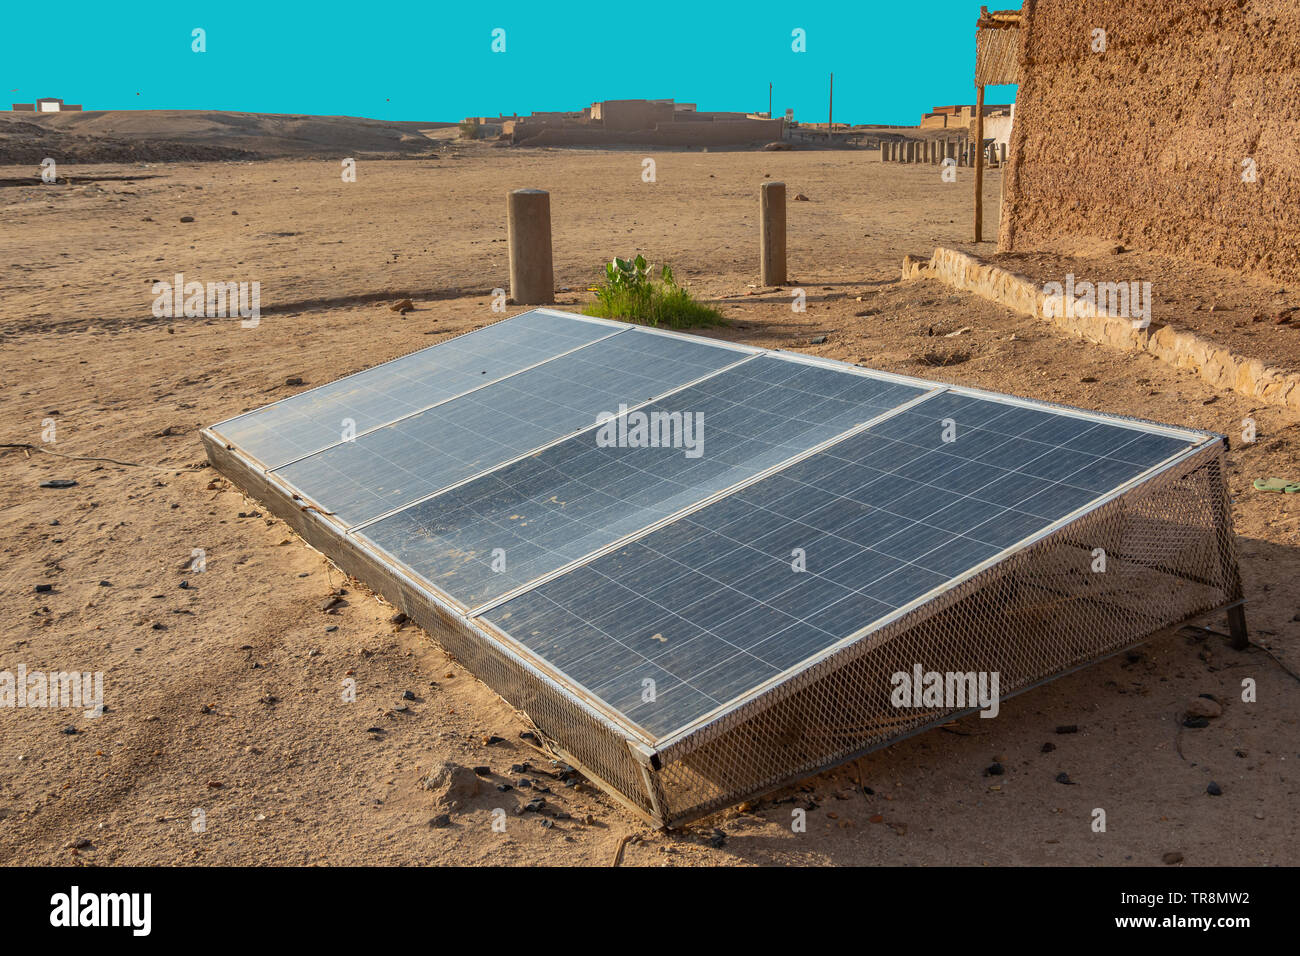 Solar energy generation with a solar module in the desert near Nuri in Sudan to generate electricity from sunlight. Stock Photo